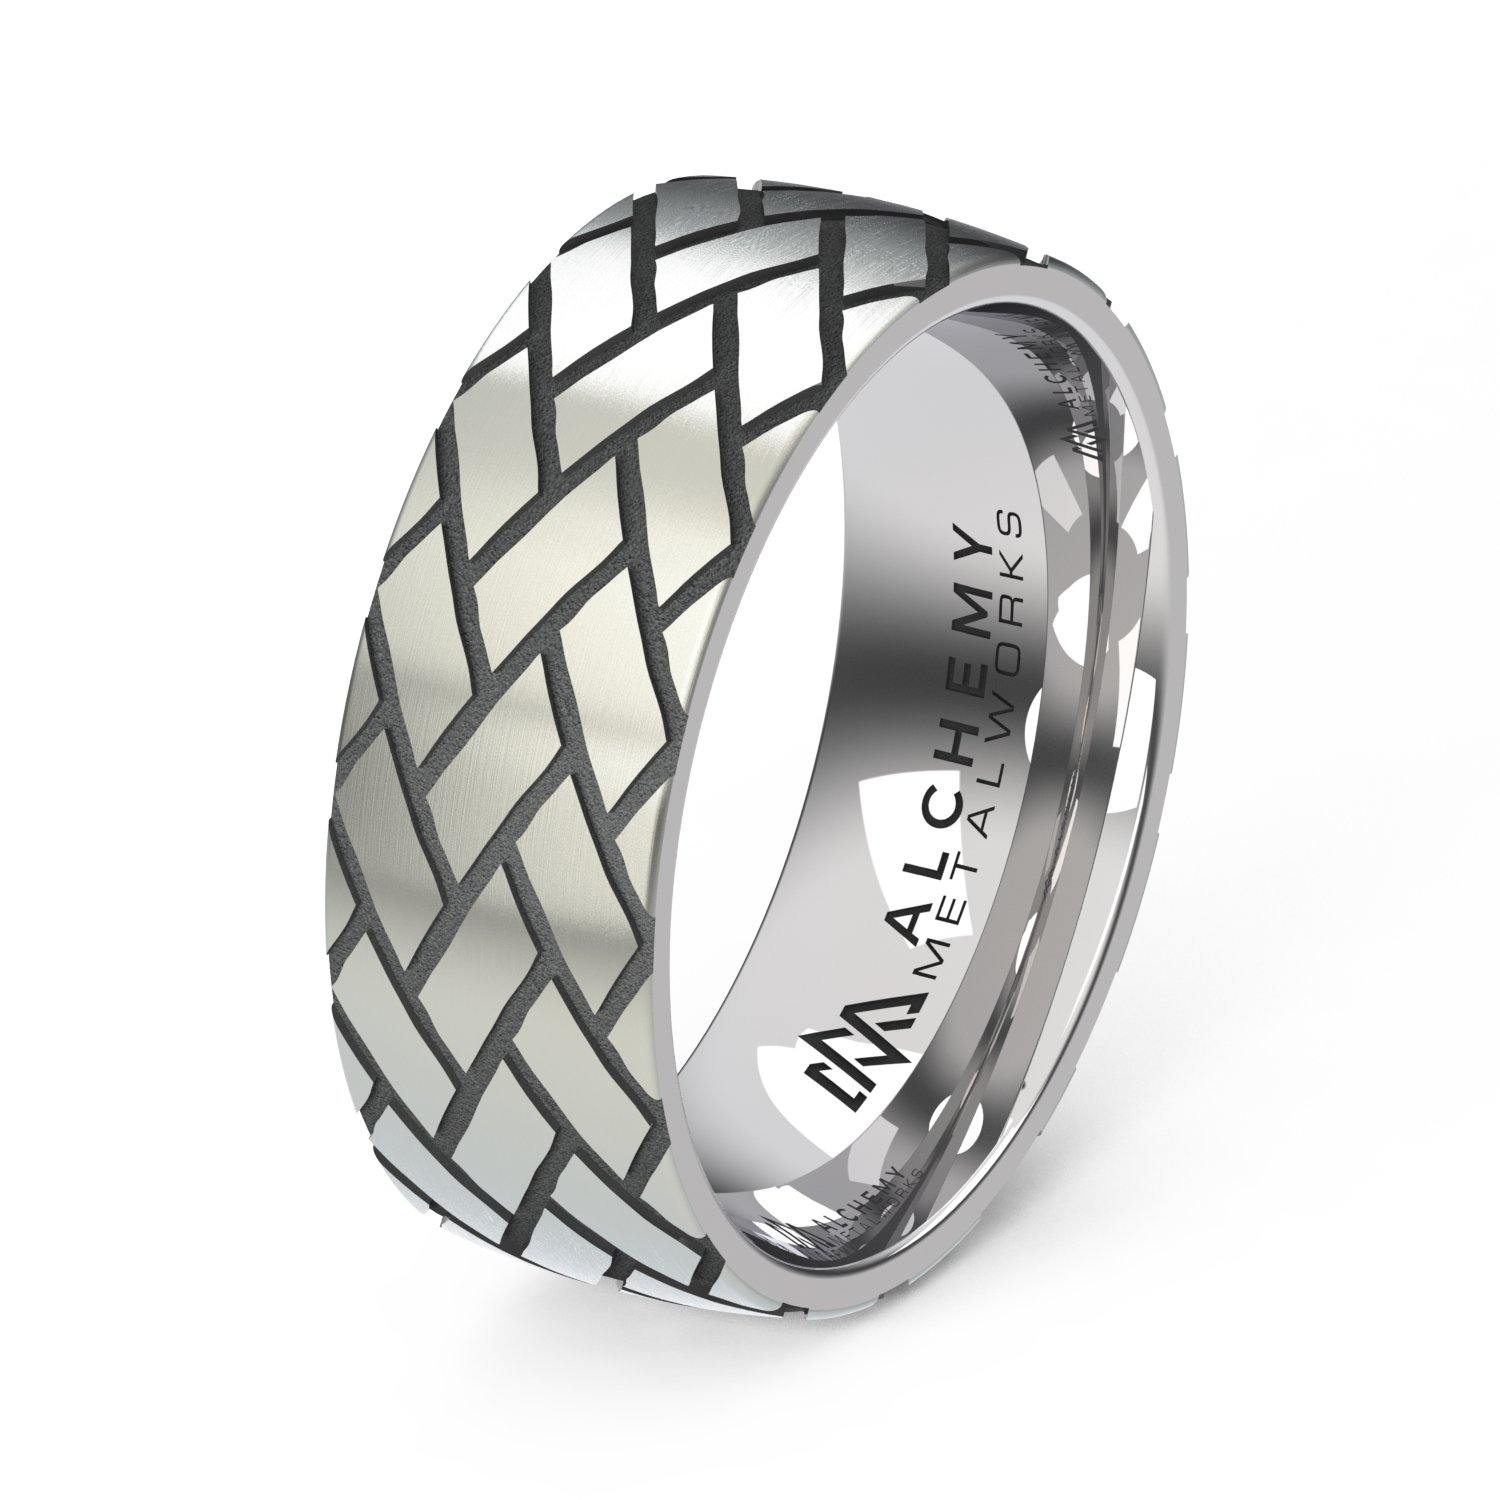 Laser Engraved Titanium Ring - Harringbone